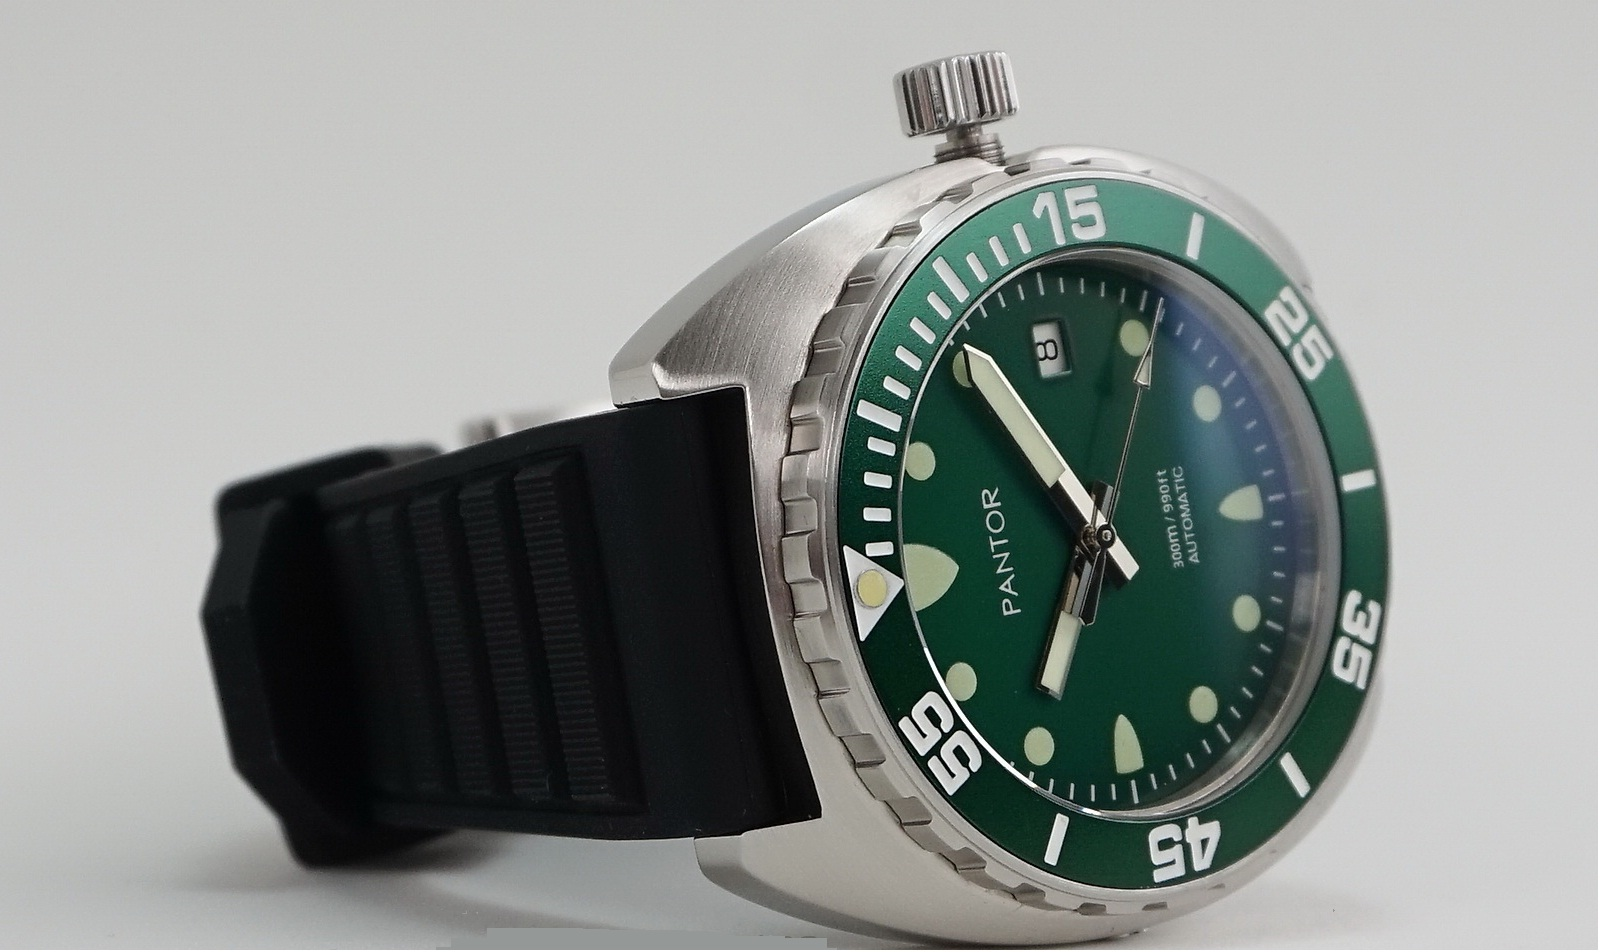 Pantor-Sealion-300m-Automatic-42mm-Pro-Dive-Watch-with-Helium-Valve-Rotating-Bezel-Sapphire-Green-dial-Stainless-Steel-Bracelet-Rubber-Strap-Sports-Watch